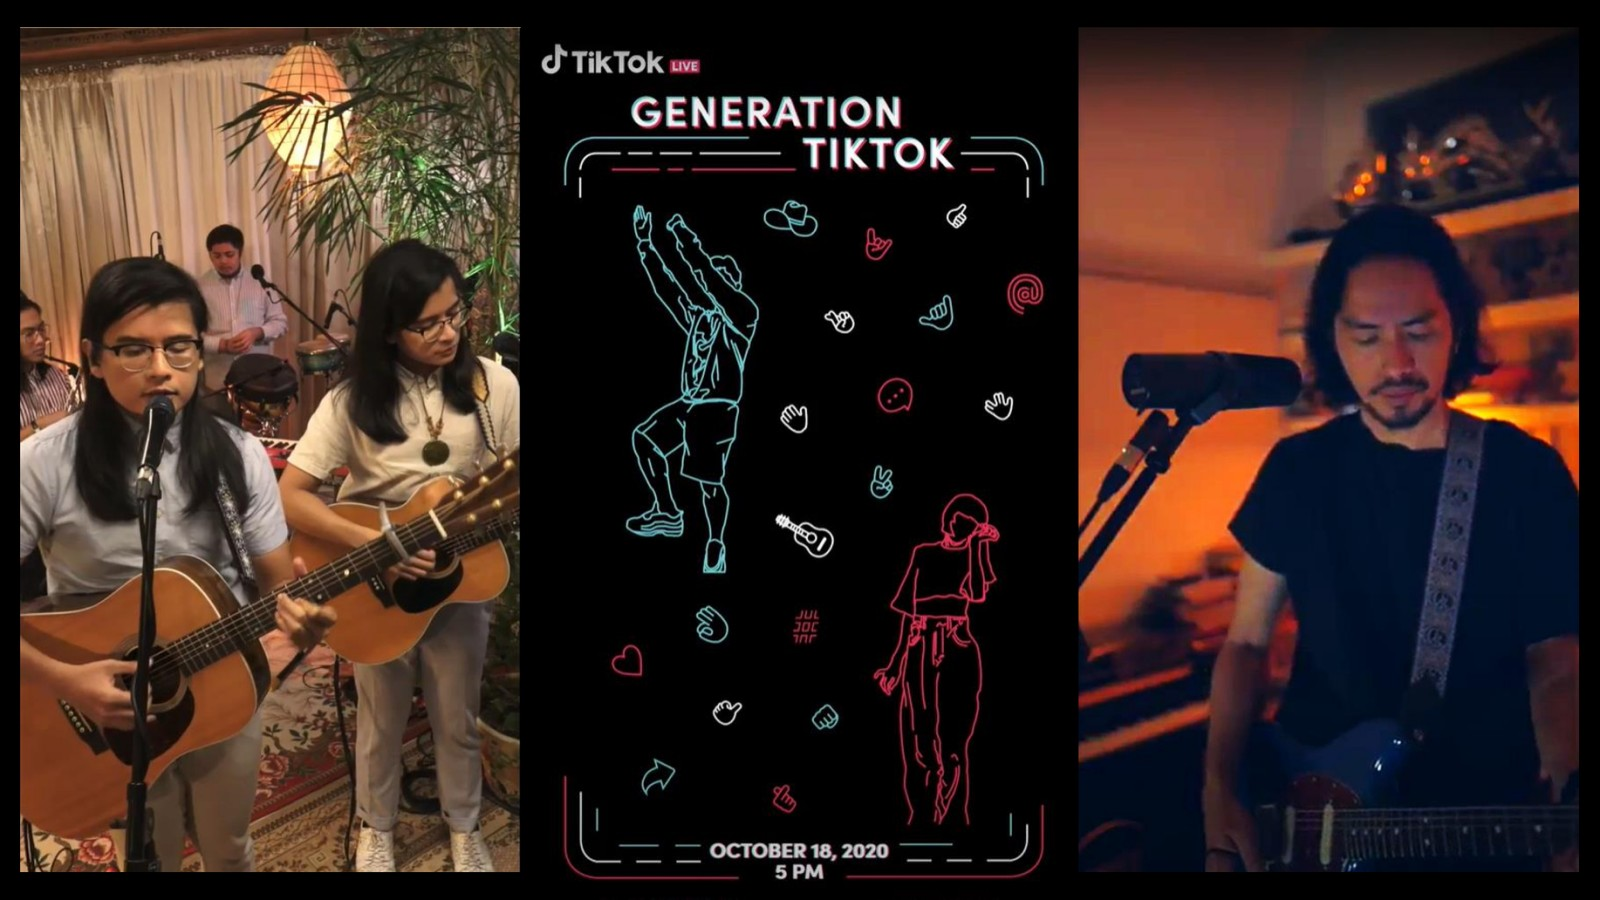 TikTok sends love to the Filipino community in free online concert celebrating content diversity and creative expression